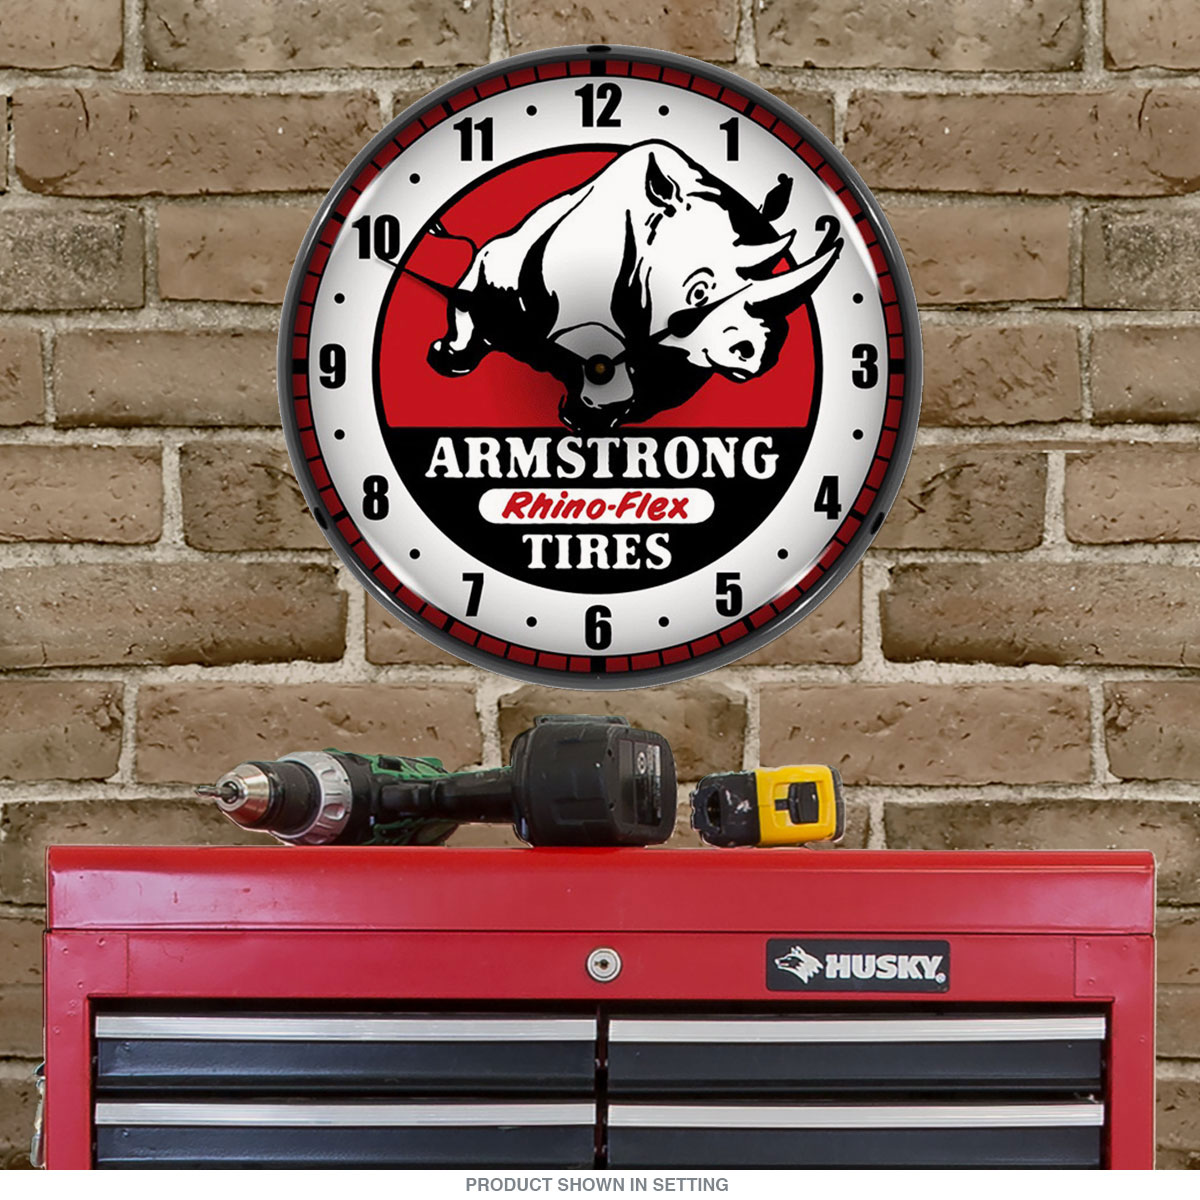 Armstrong Rhino Flex Tires Light Up Garage Clock